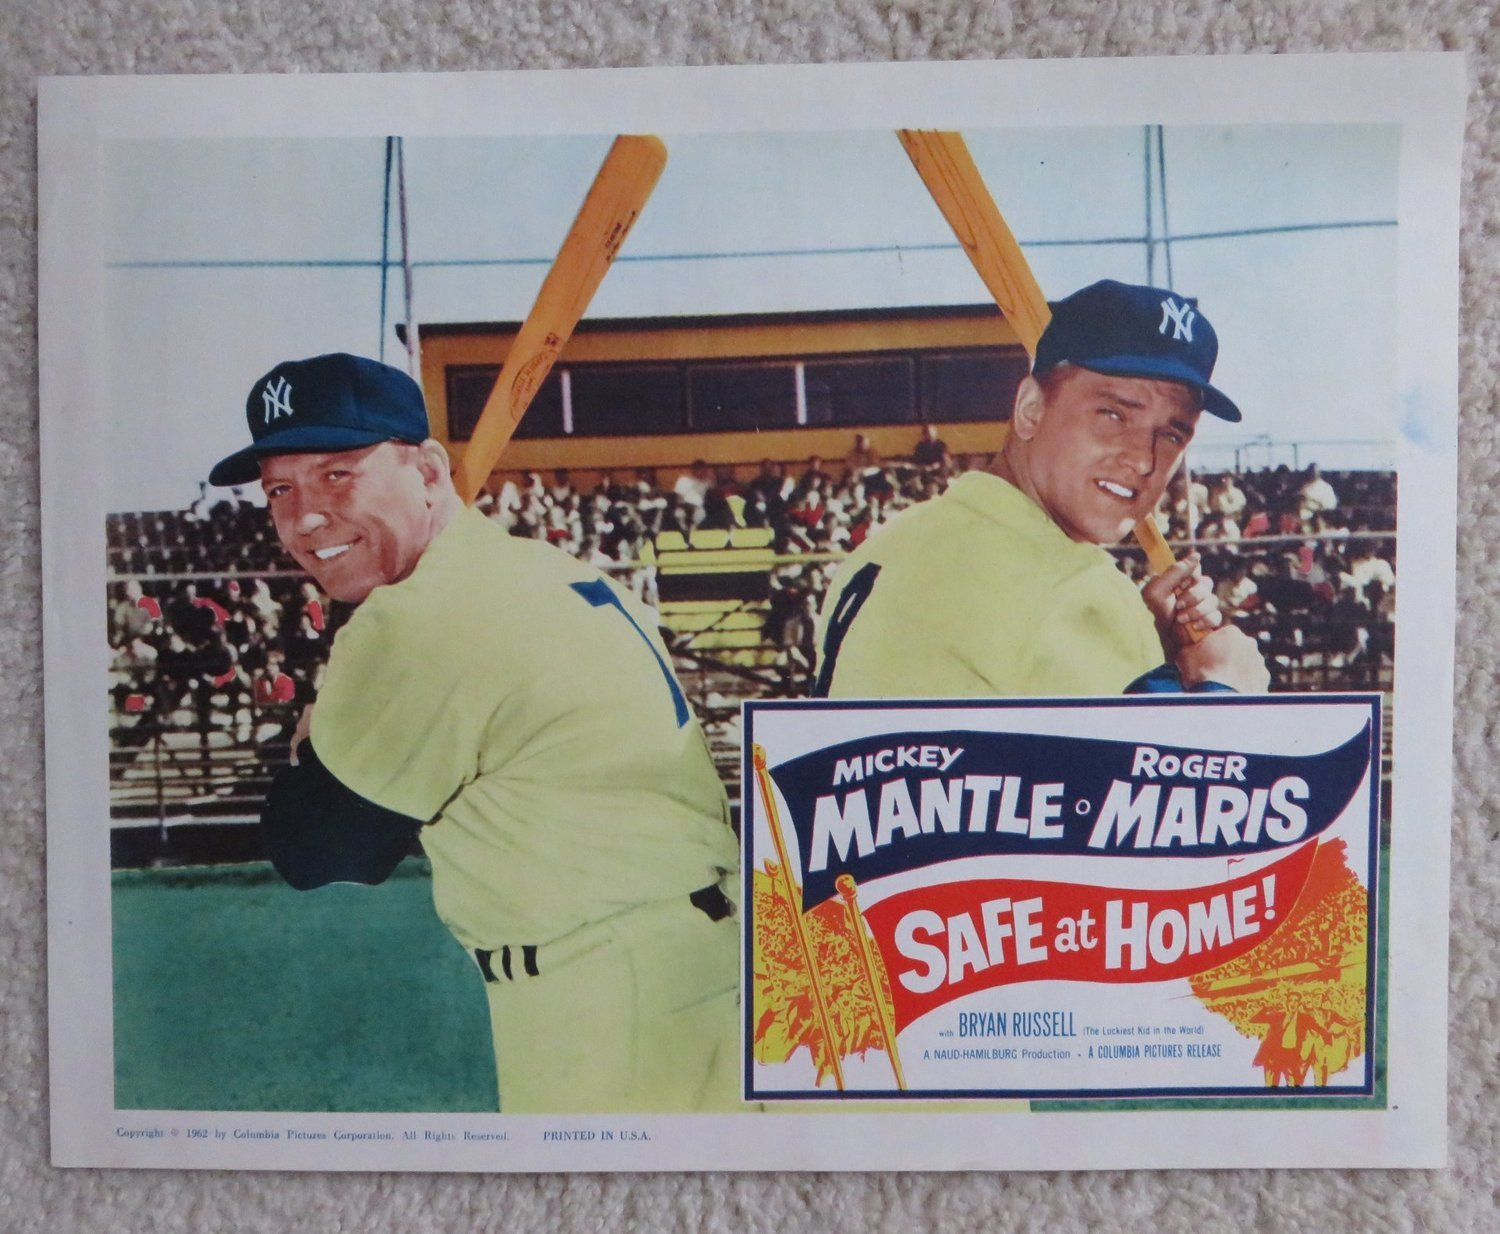 Itemm061962 Safe At Home Movie Lobby Card Mickey Mantle And Roger Maris